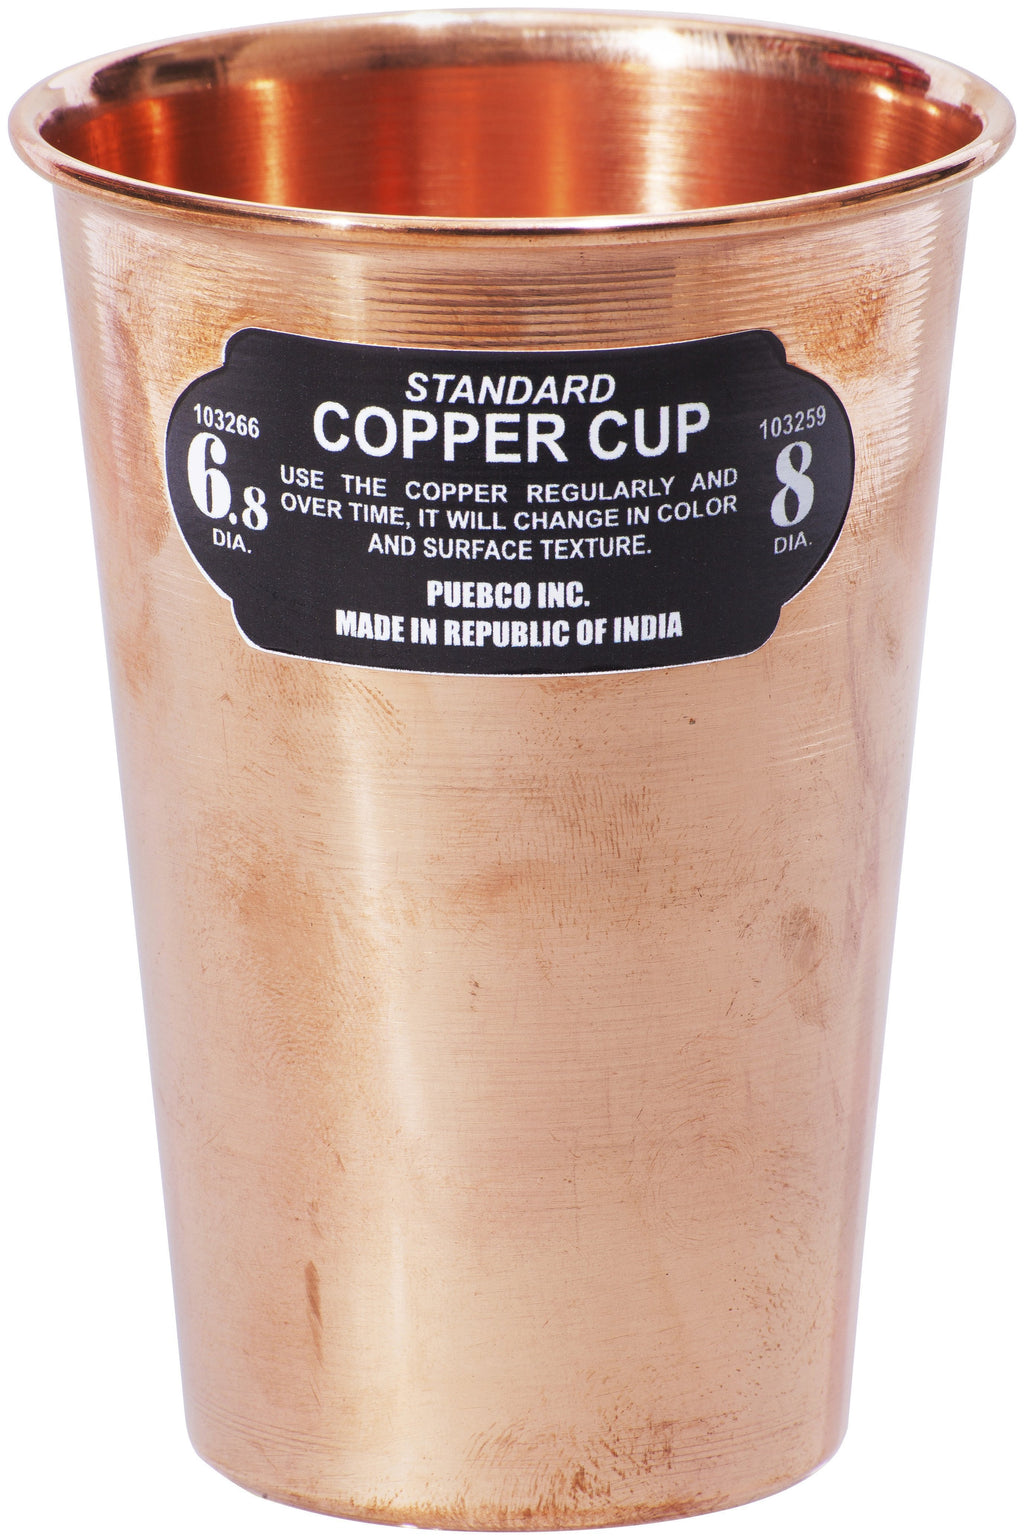 COPPER CUP - STACKABLE DESIGN BY PUEBCO